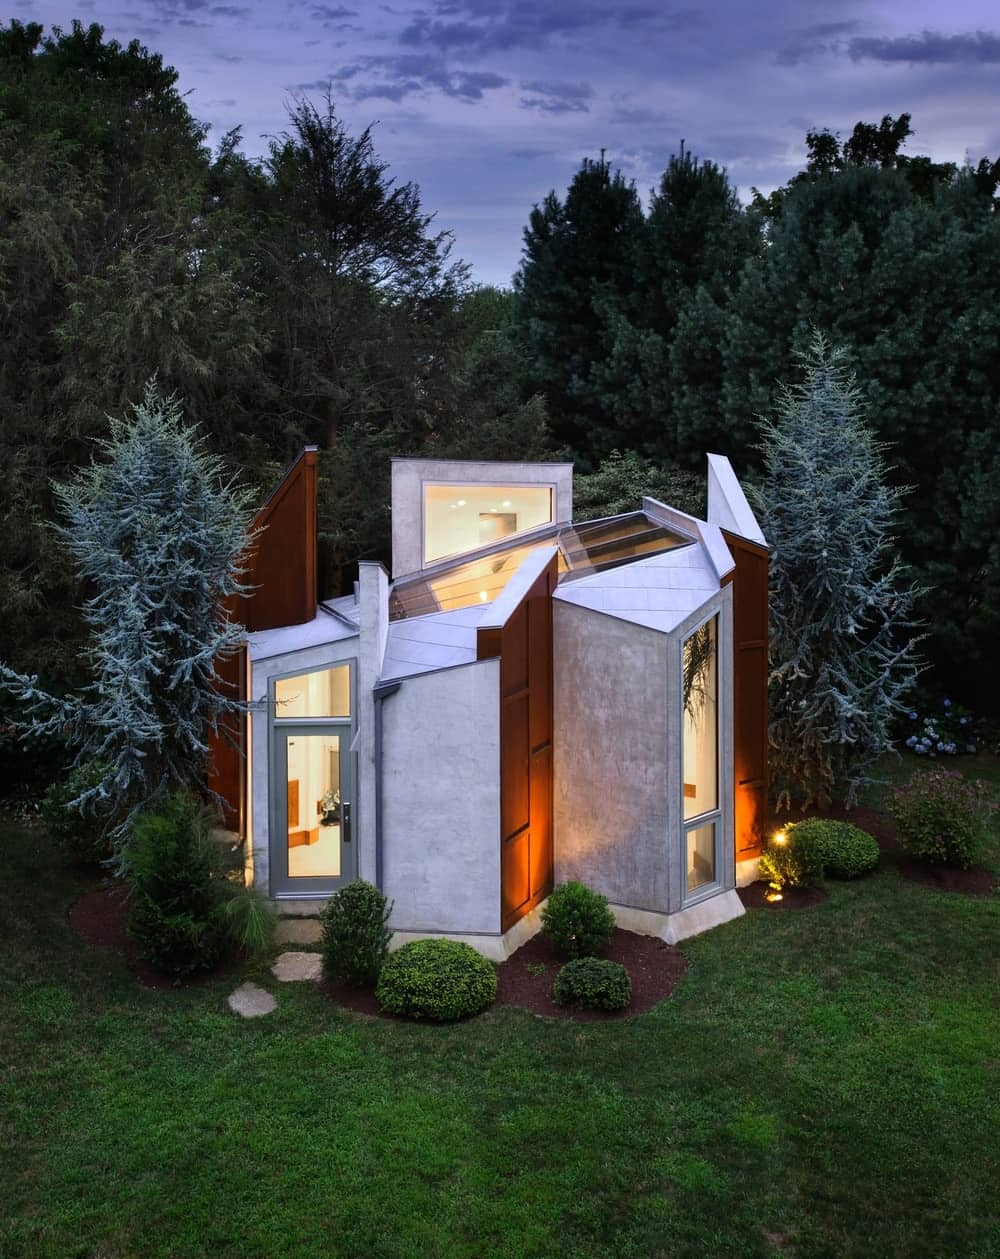 The aerial view of the detached home office at dusk. Photo by Paul Bartolomeuw / Designed by Valerie Schweitzer Architects